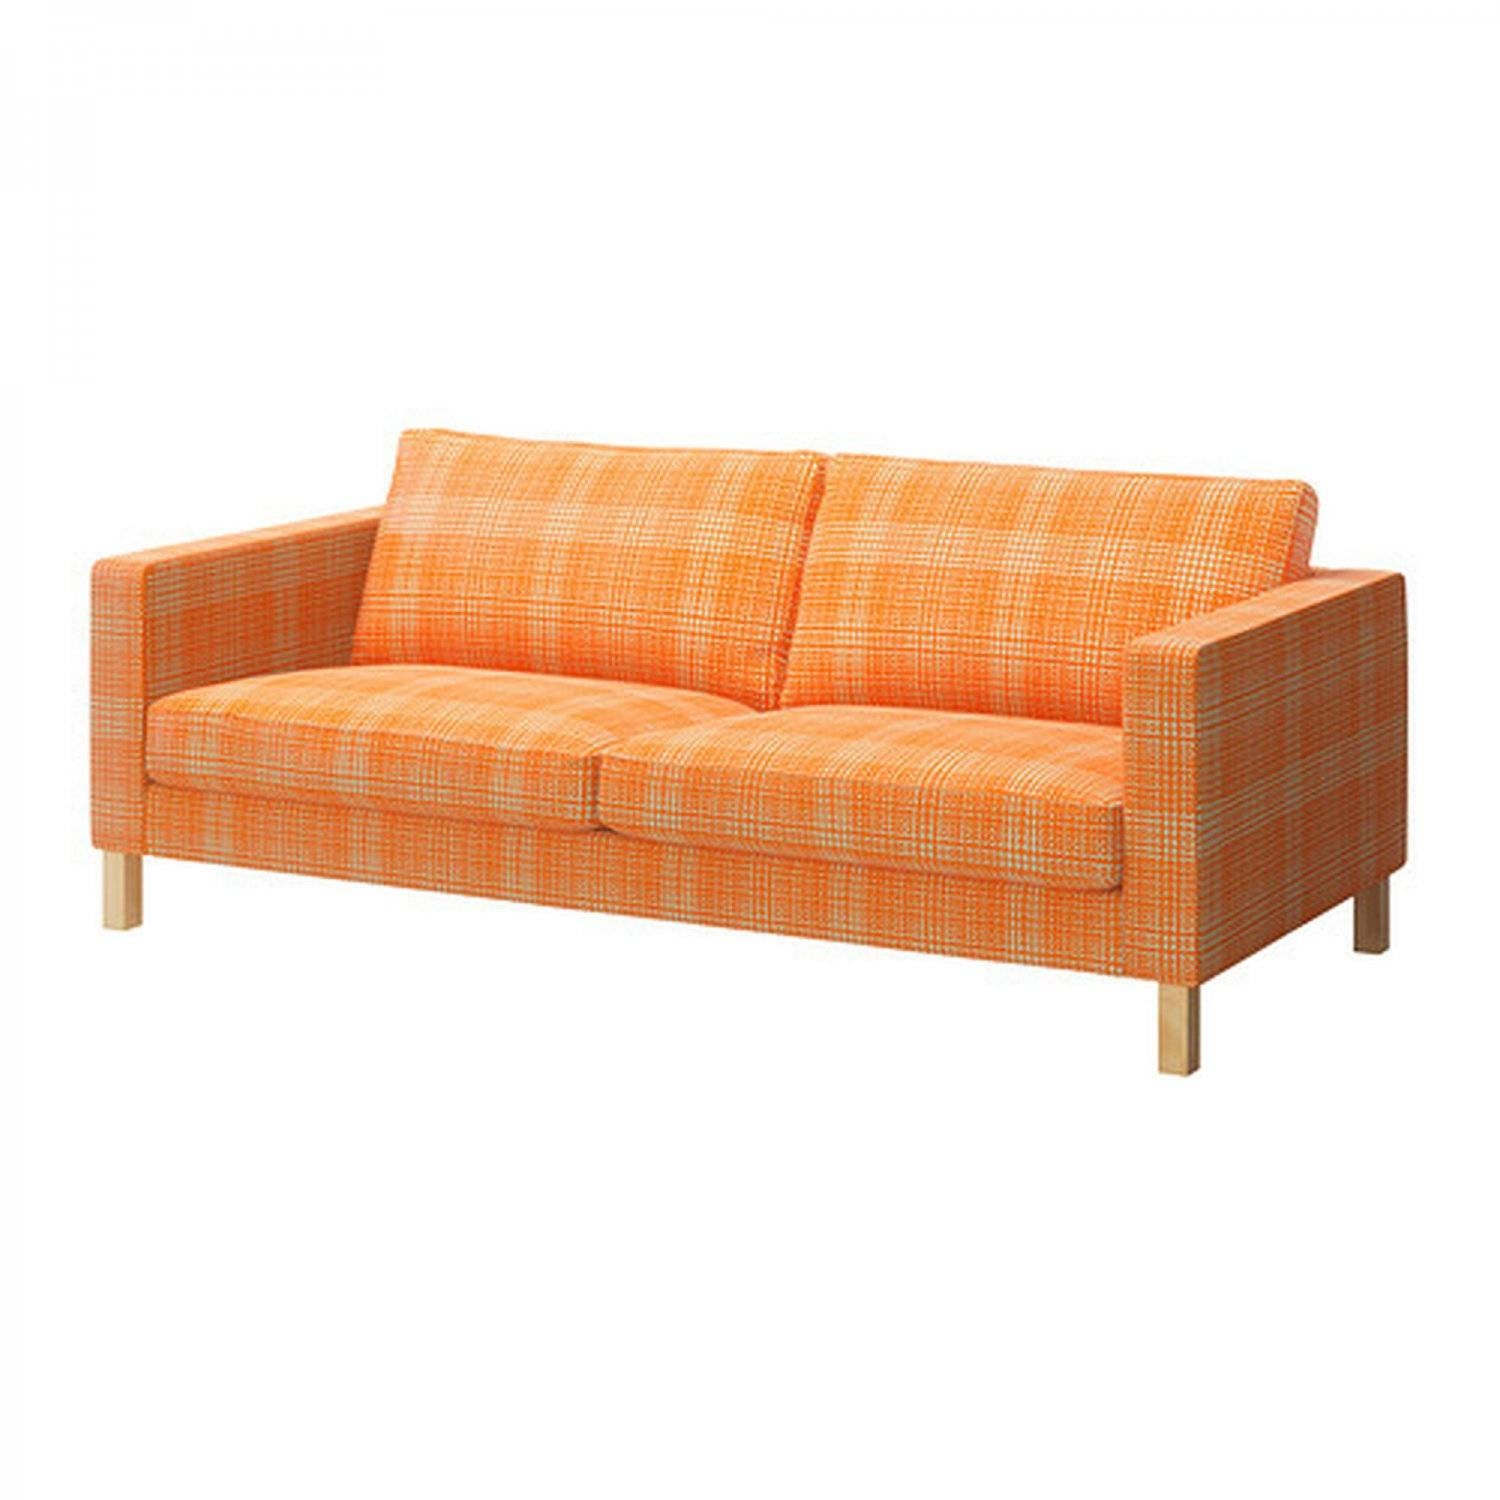 Furniture: Stunning Ikea Karlstad Sofa Cover For Your Sofa Need intended for Orange Ikea Sofas (Image 16 of 30)